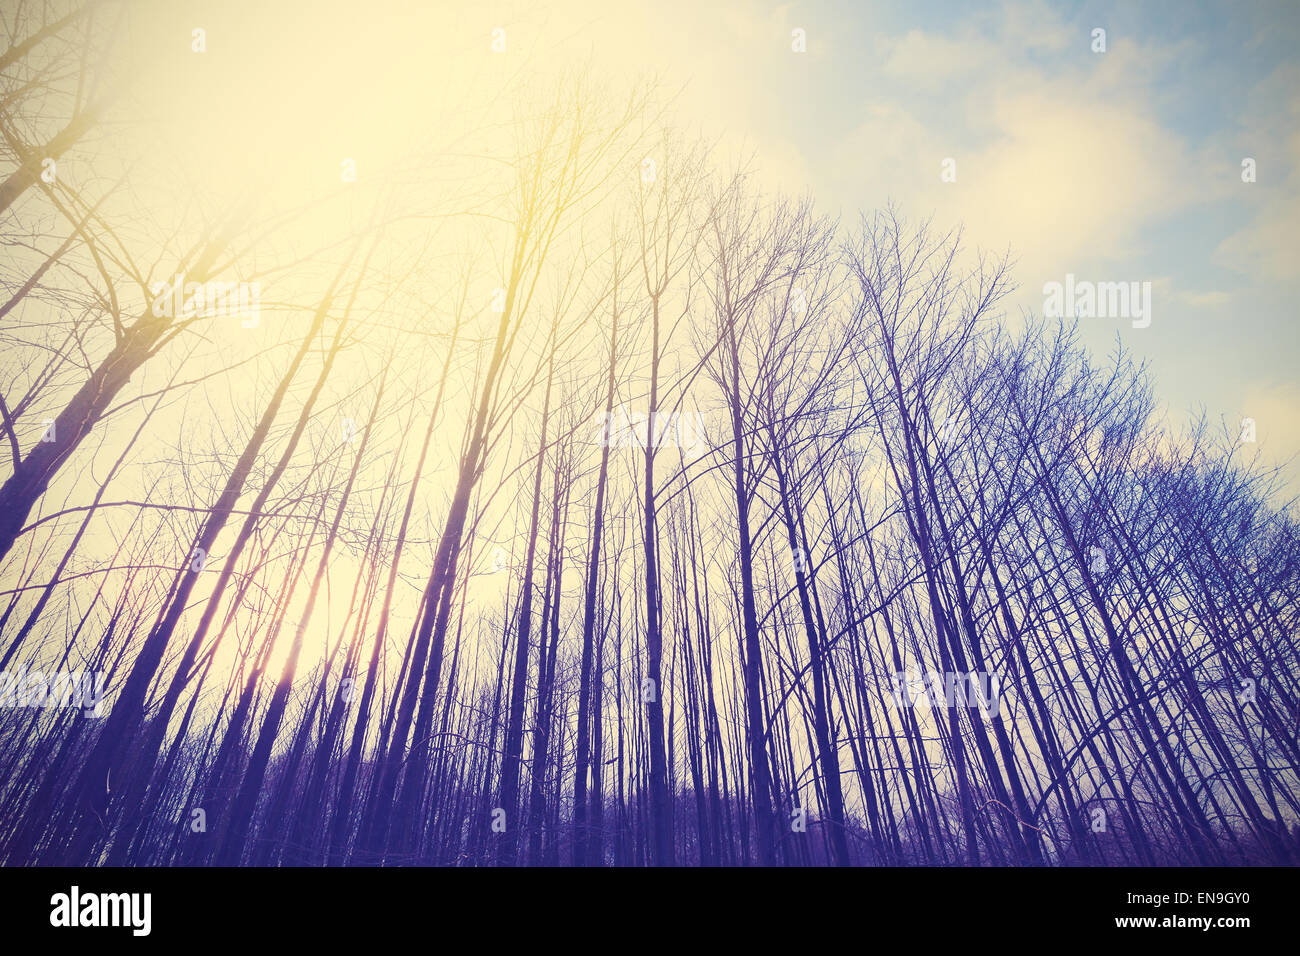 Vintage toned peaceful forest with vignette effect. - Stock Image